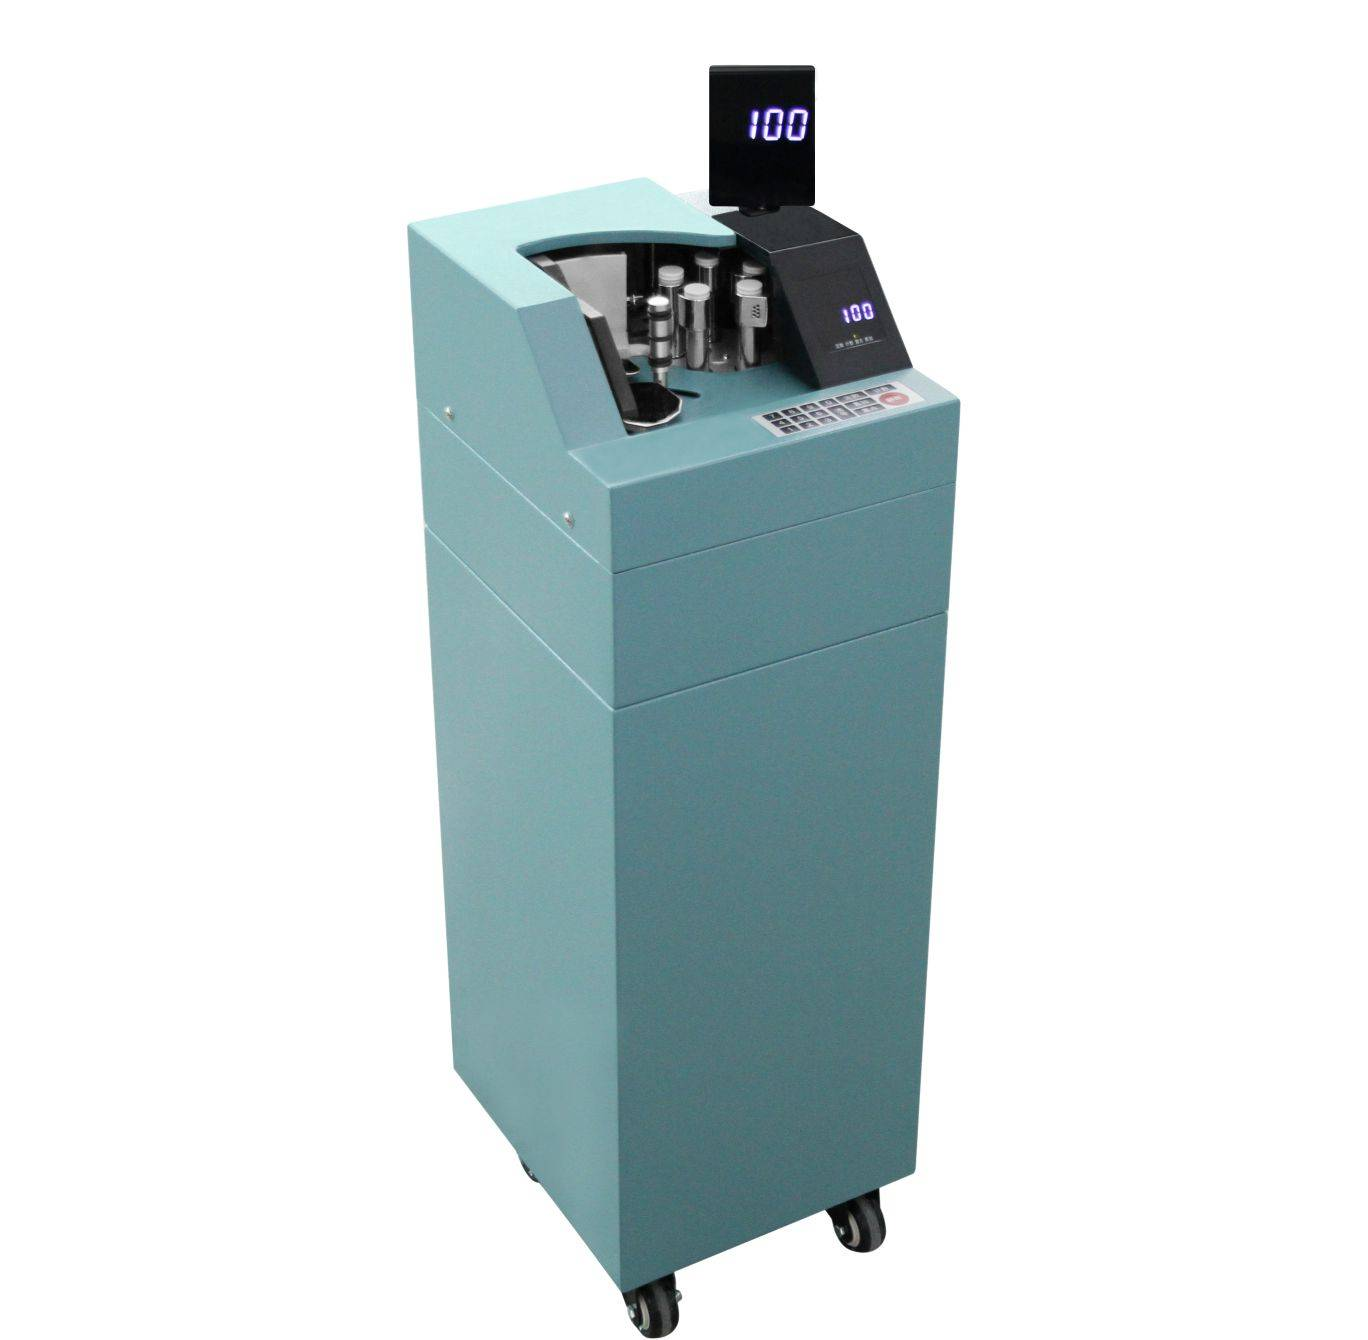 FDJ-126A Vacuum Money Counter With Semi-Automatic Dust Absorption Cover and UV for Bundled money